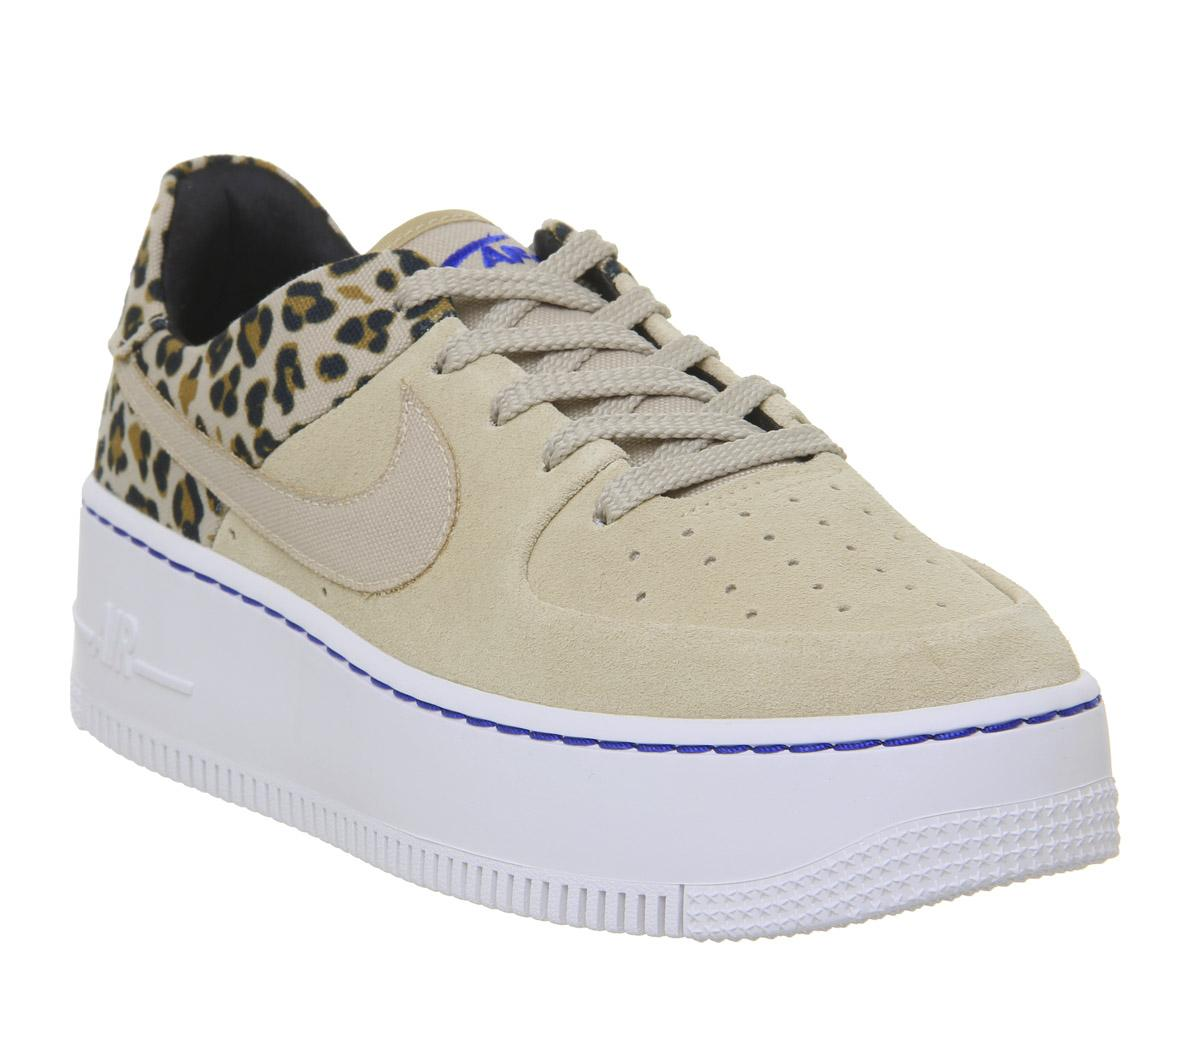 Classic Leopard Print Nike Air Force 1 Sage Low Premium